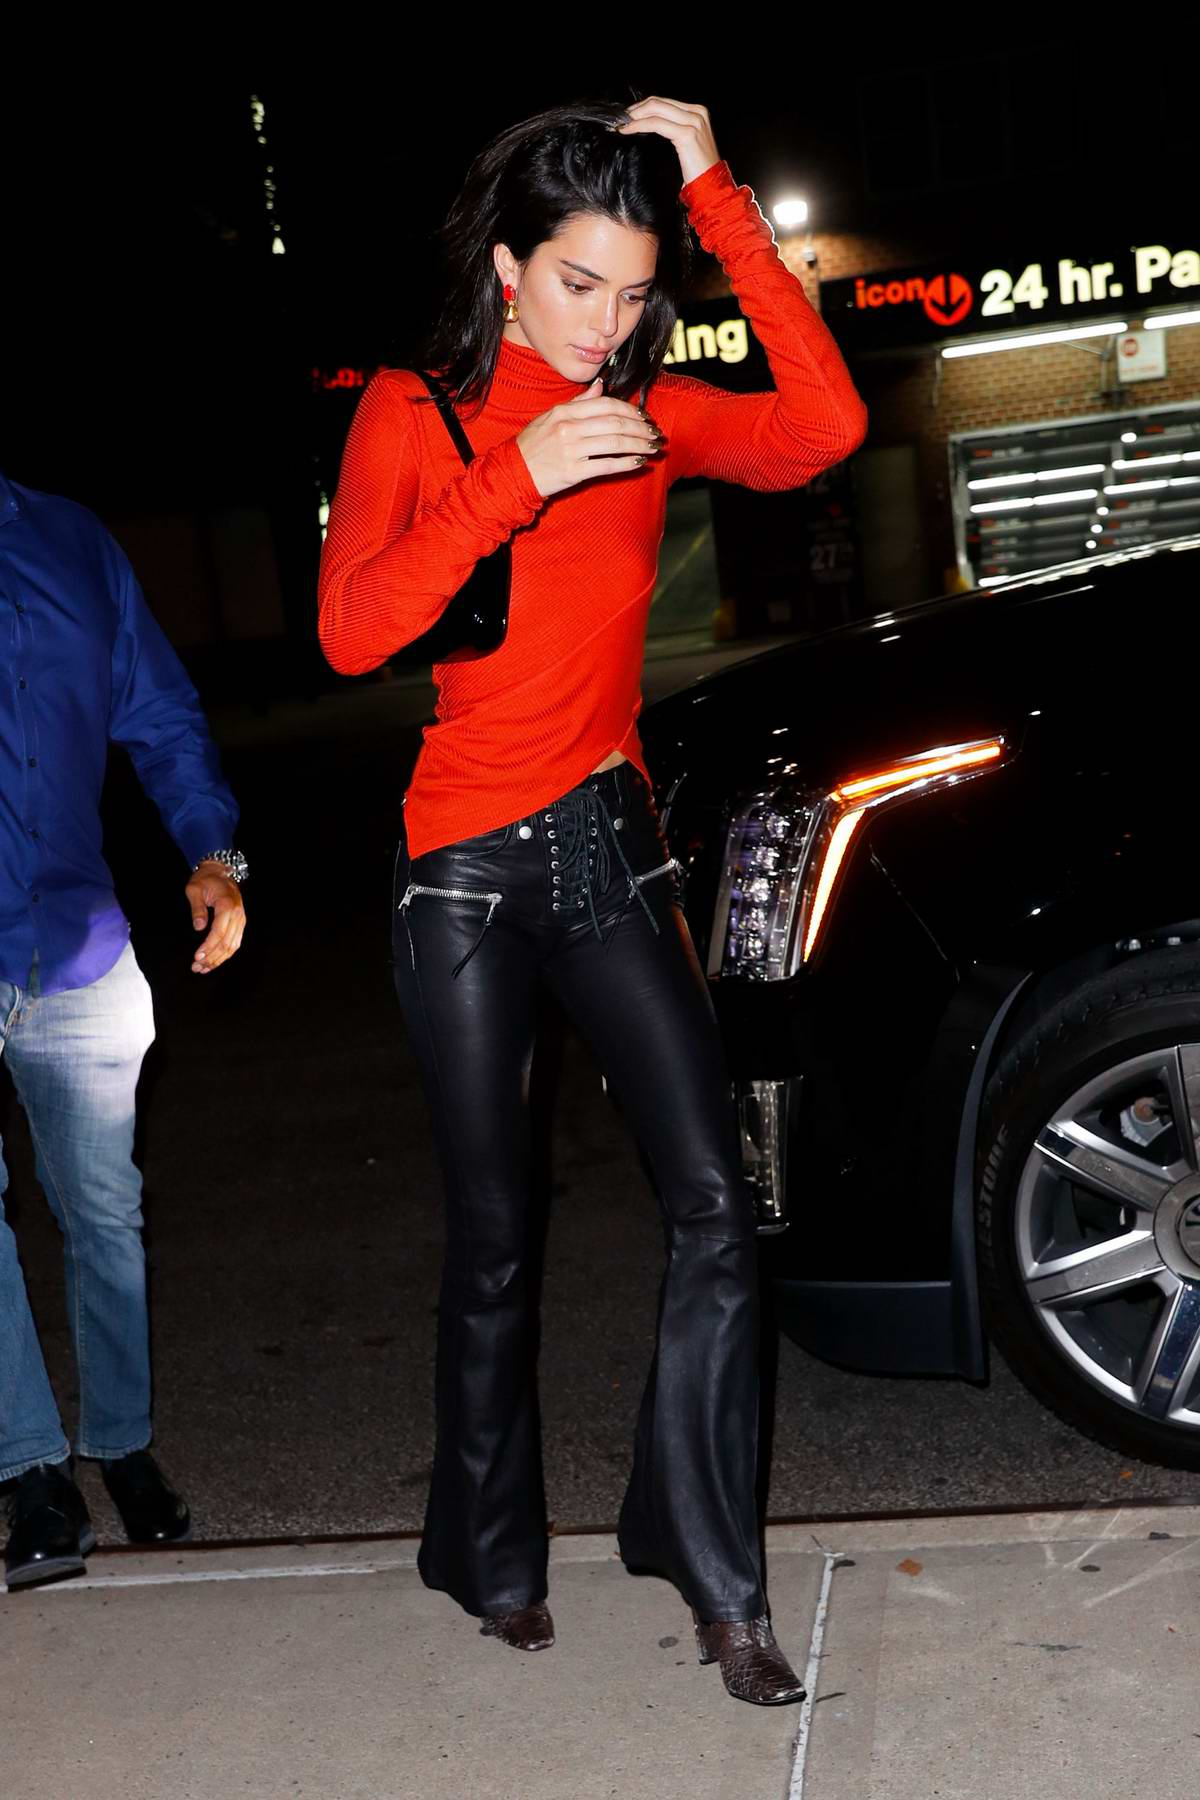 Kendall Jenner wears a red top and black leather pants as she heads to Bella Hadid's birthday party in New York City